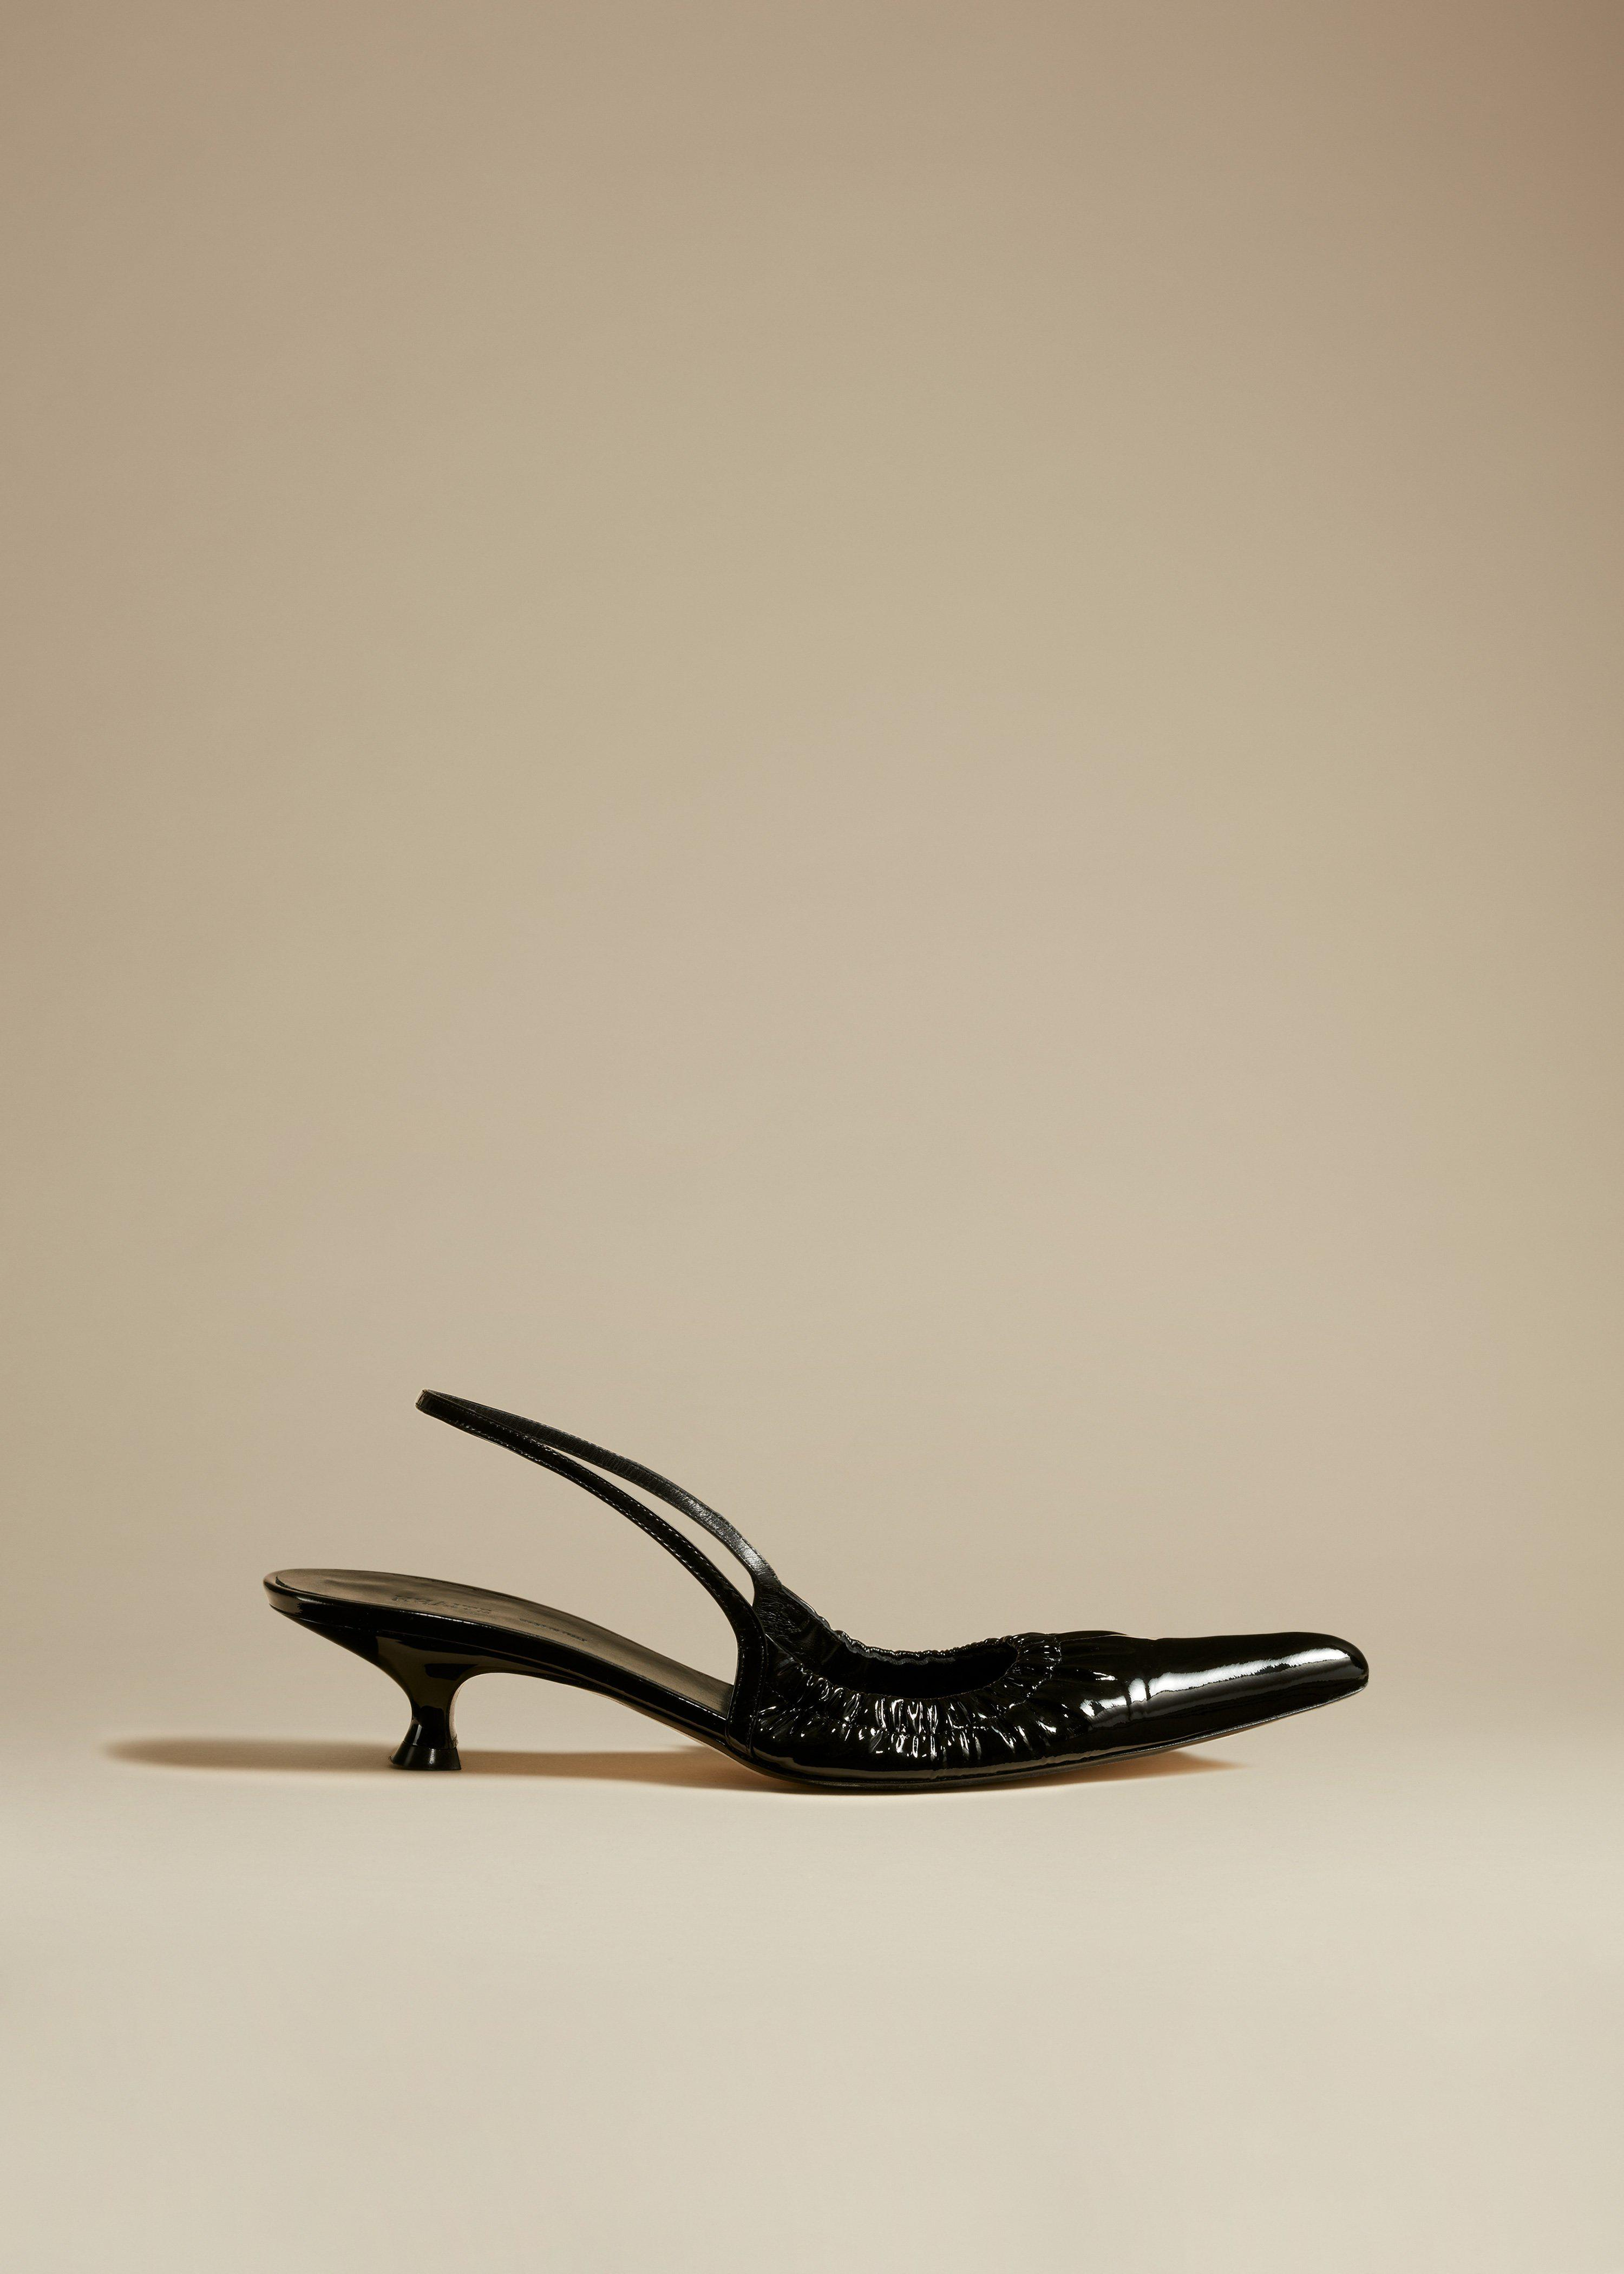 The Athens Pump in Black Patent Leather